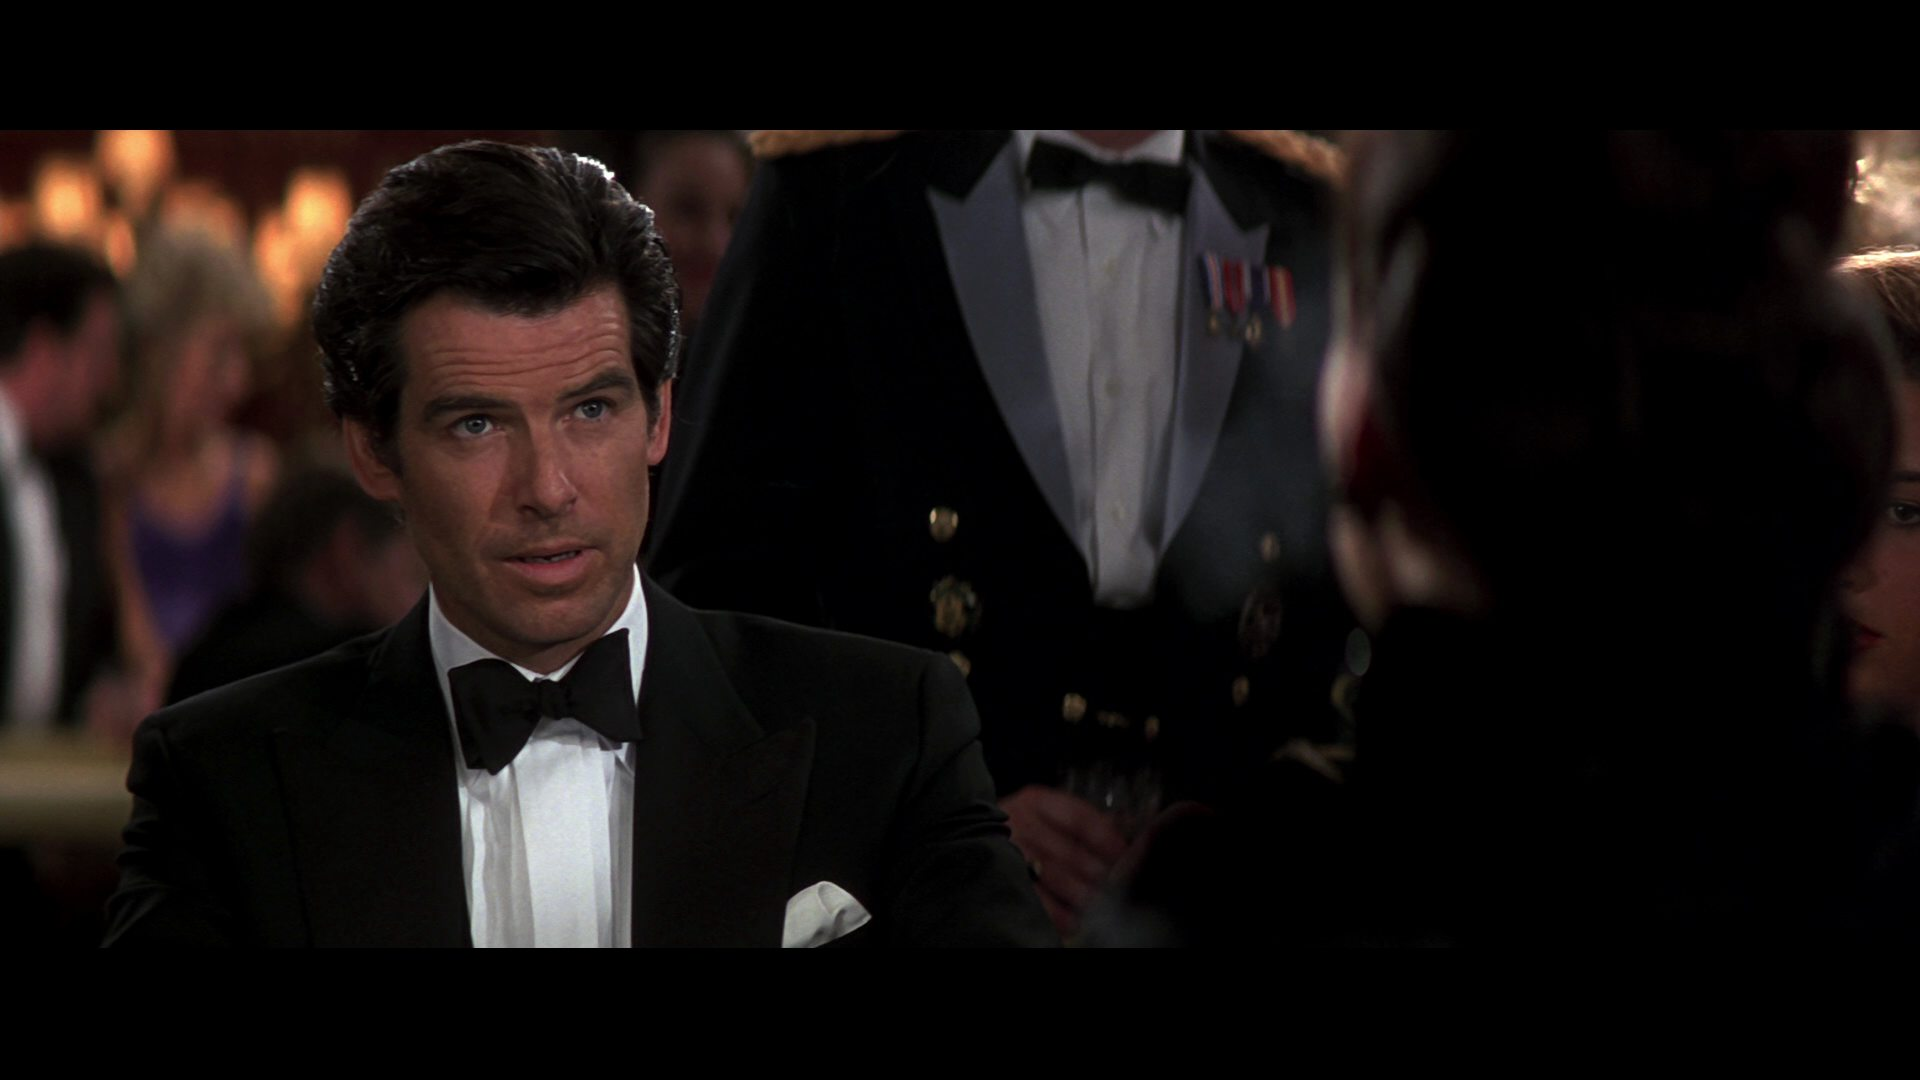 Pierce Brosnan as James Bond, 007